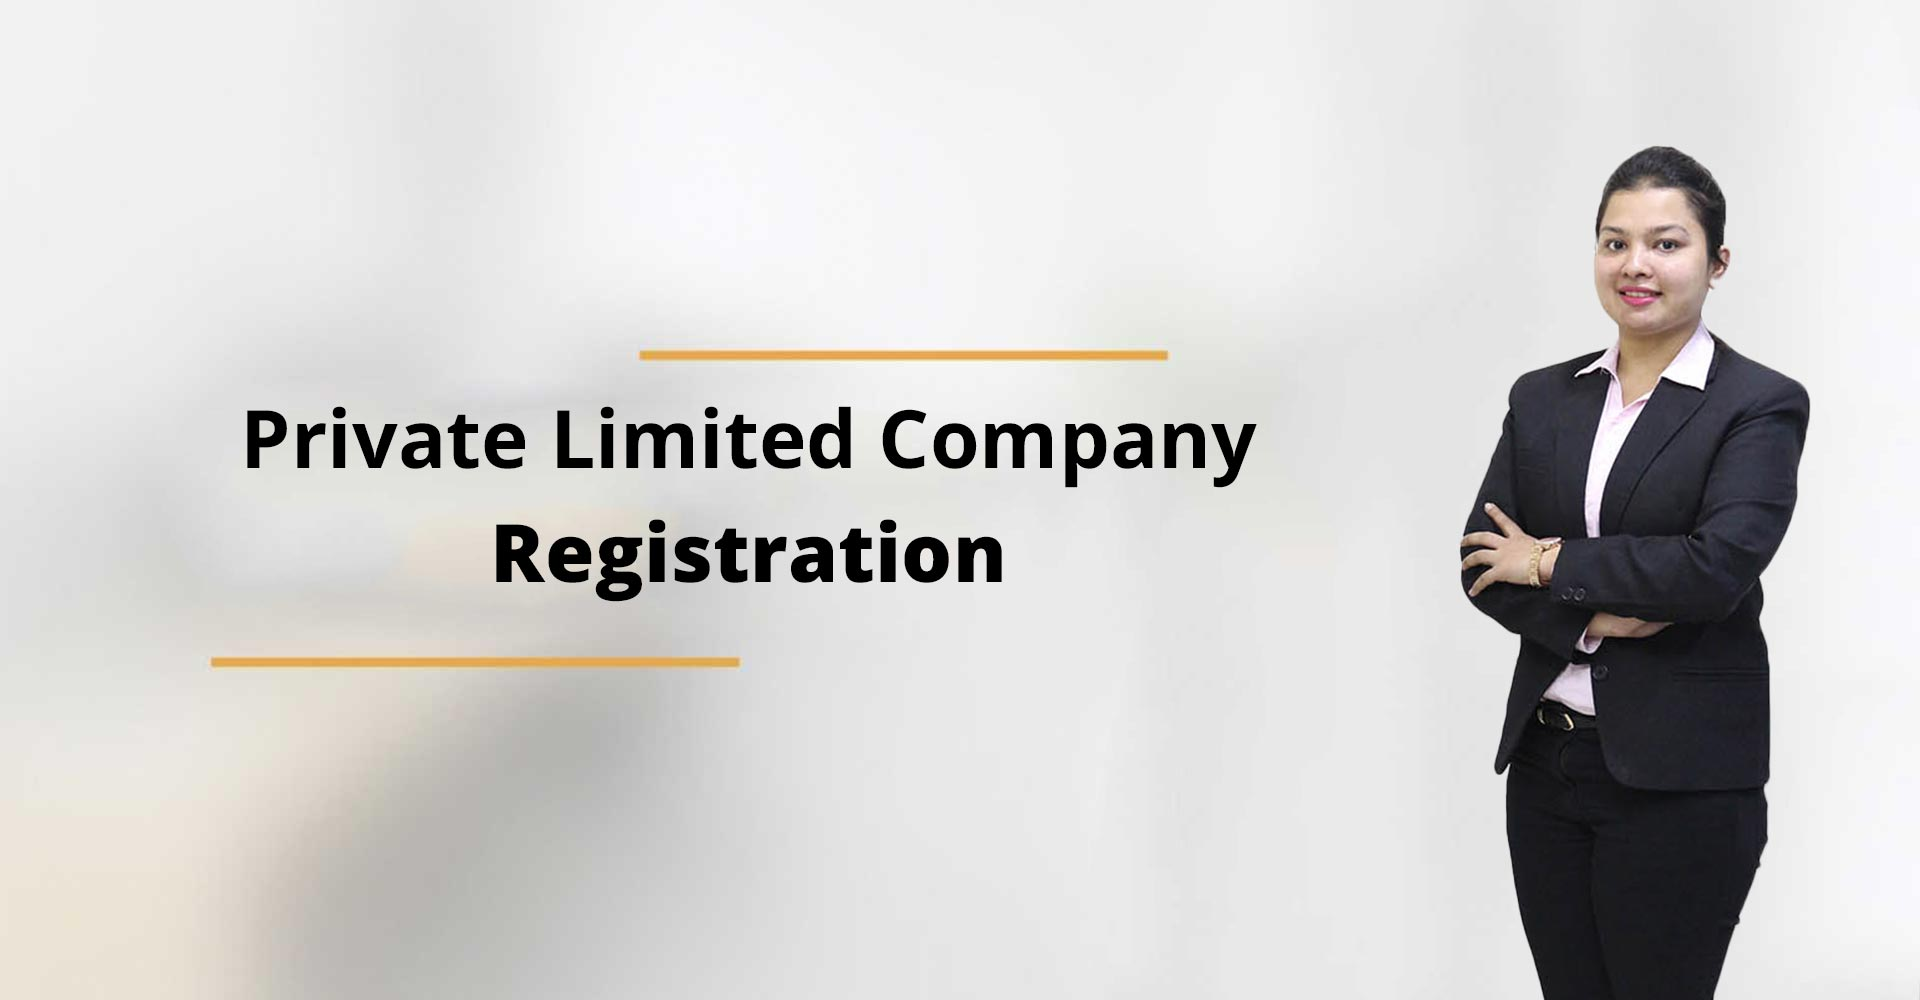 Private Limited Company registration